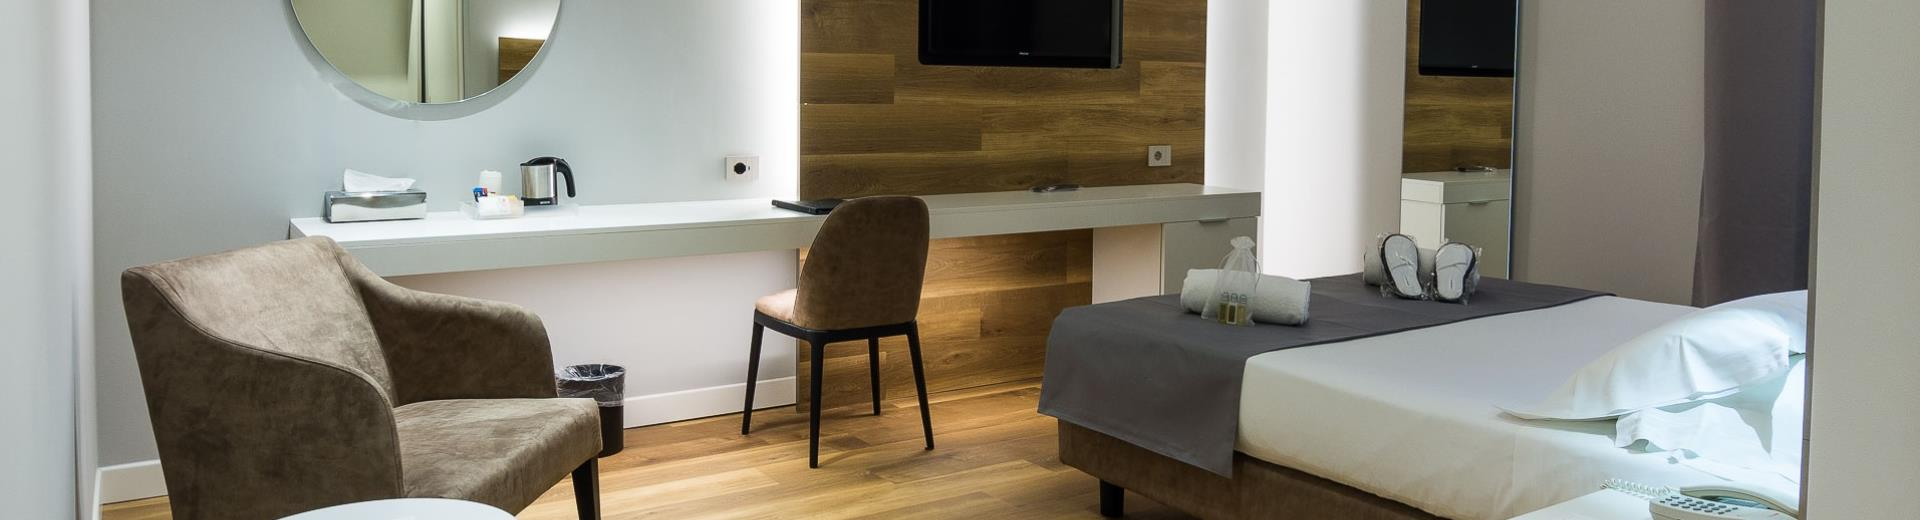 Looking for a hotel with elegant and comfortable rooms in Verona? Then choose Hotel Turismo, modern 4 stars in Verona East!